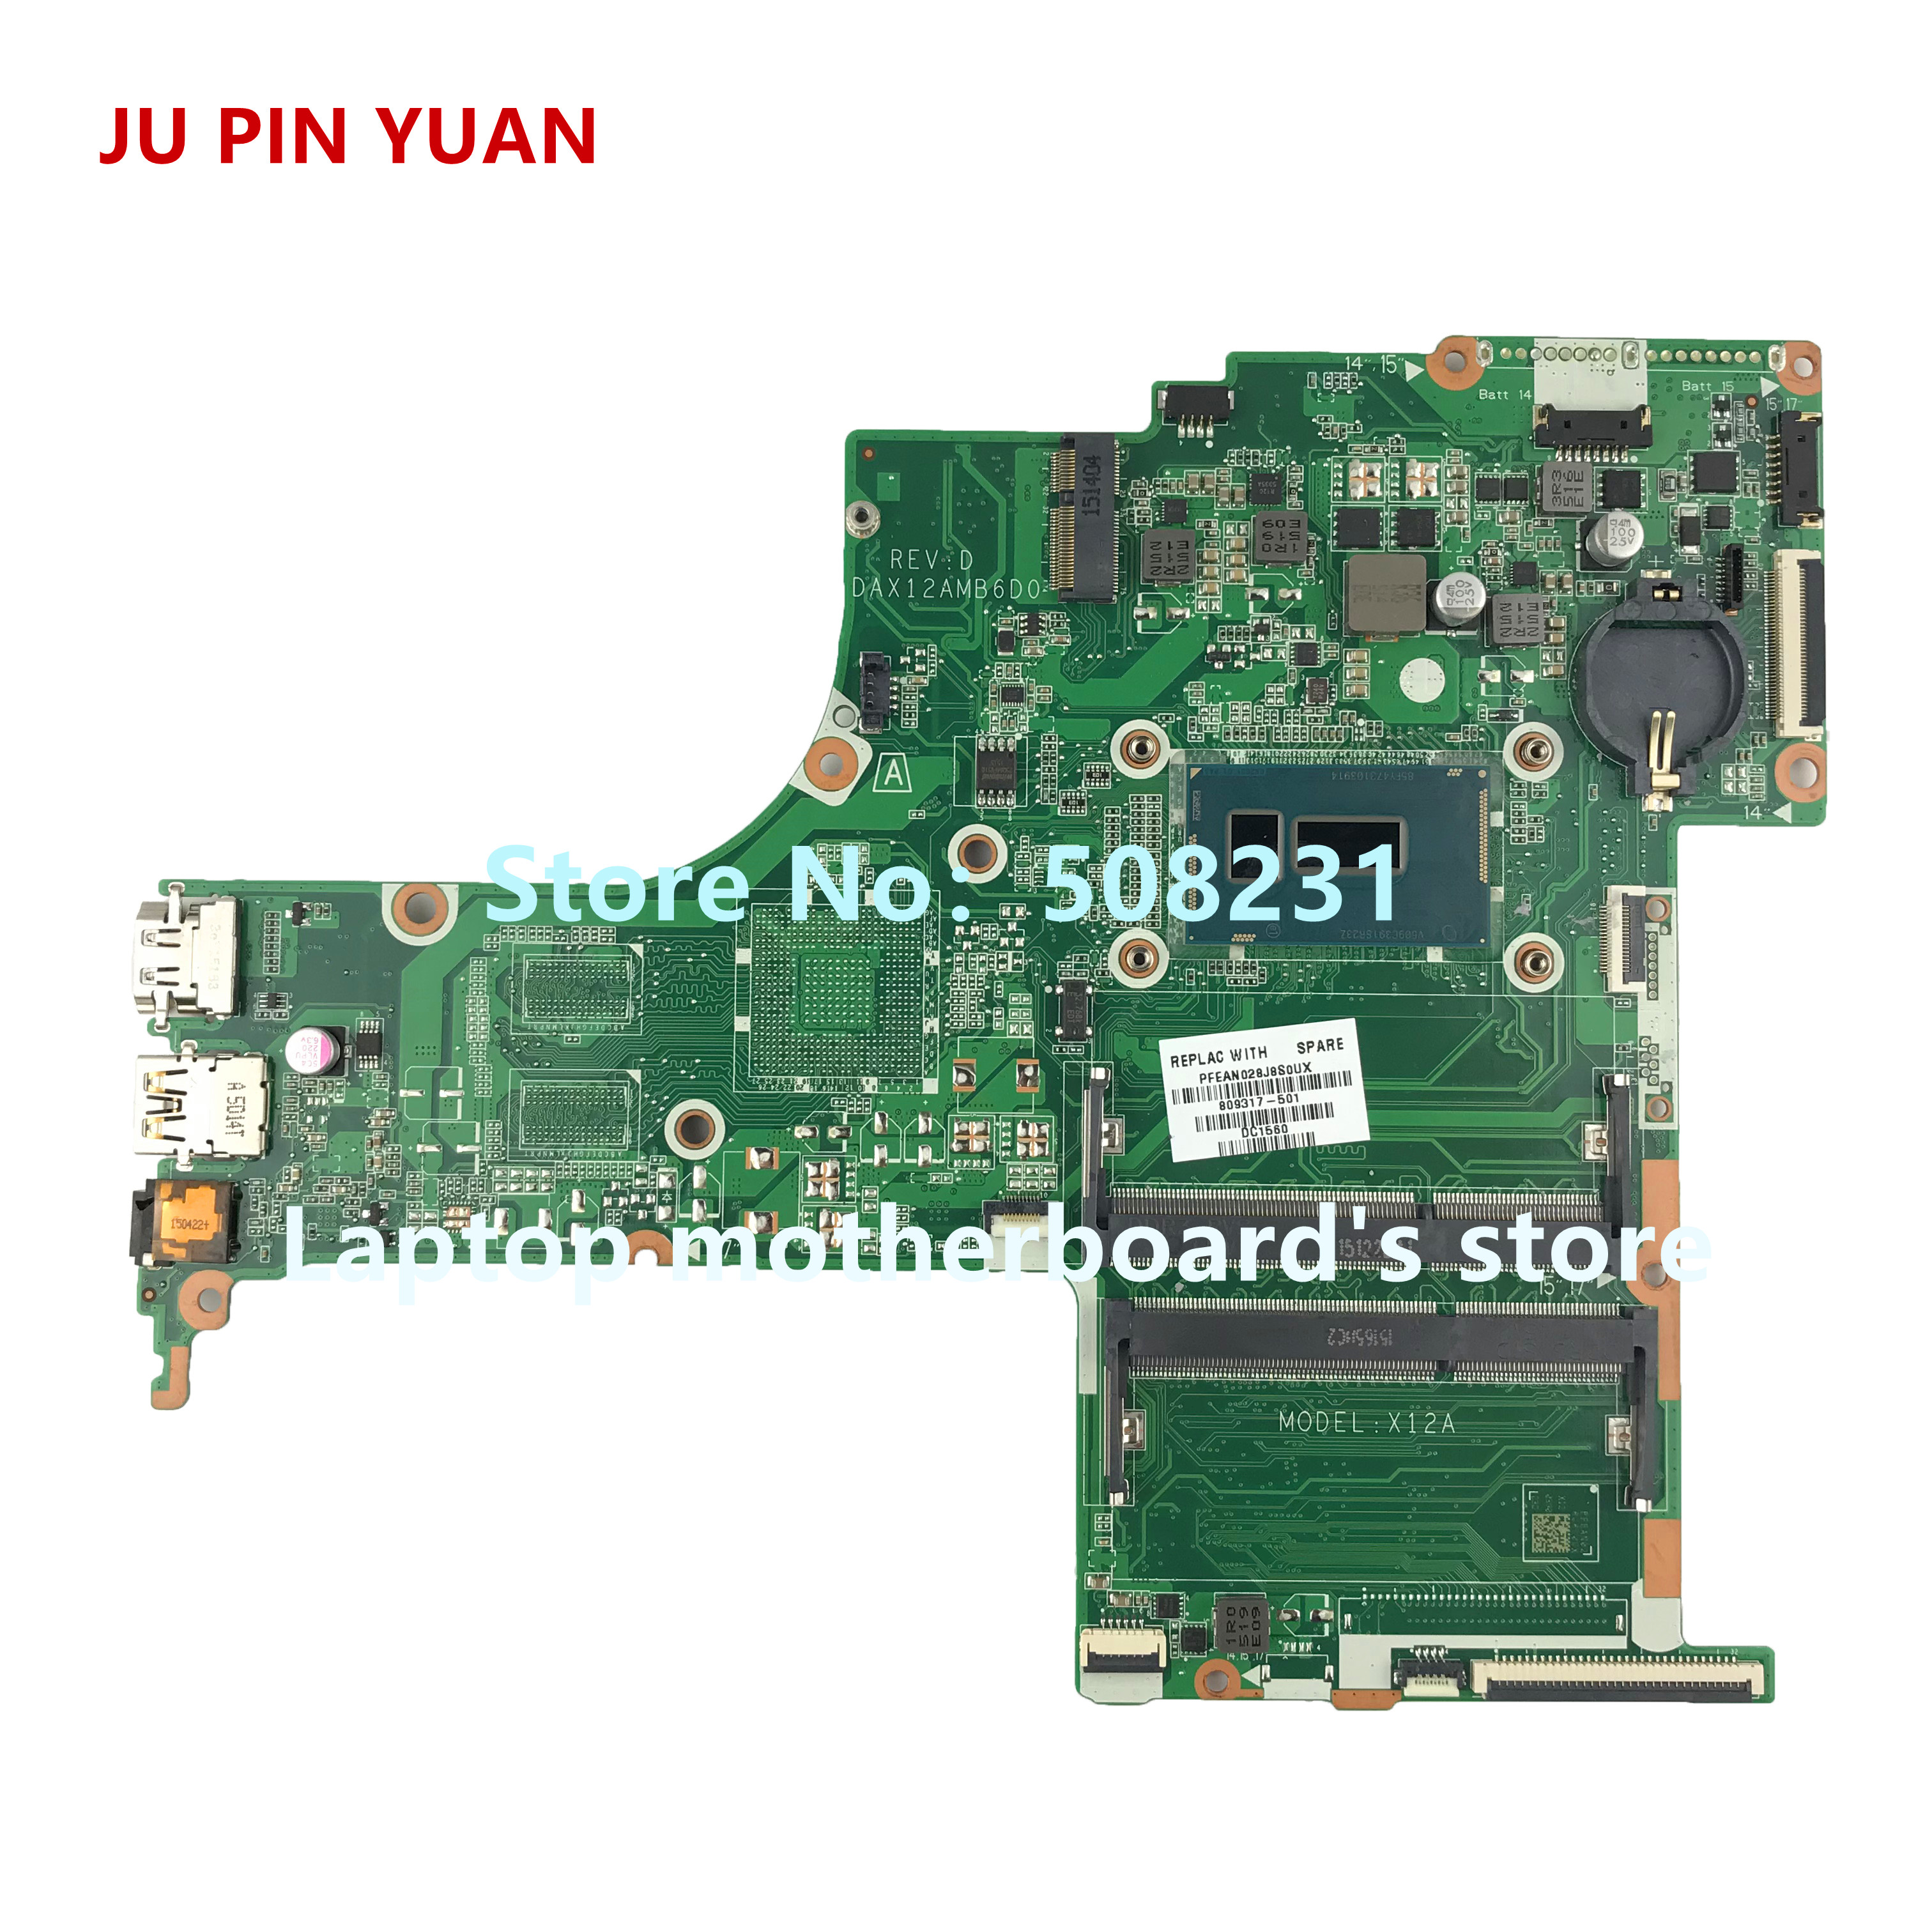 JU PIN YUAN 809317-501 809317-601 for HP Pavilion Notebook 17-G 17T-G 17-G040NR Laptop motherboard X12A DAX12AMB6D0 i3-5010U JU PIN YUAN 809317-501 809317-601 for HP Pavilion Notebook 17-G 17T-G 17-G040NR Laptop motherboard X12A DAX12AMB6D0 i3-5010U